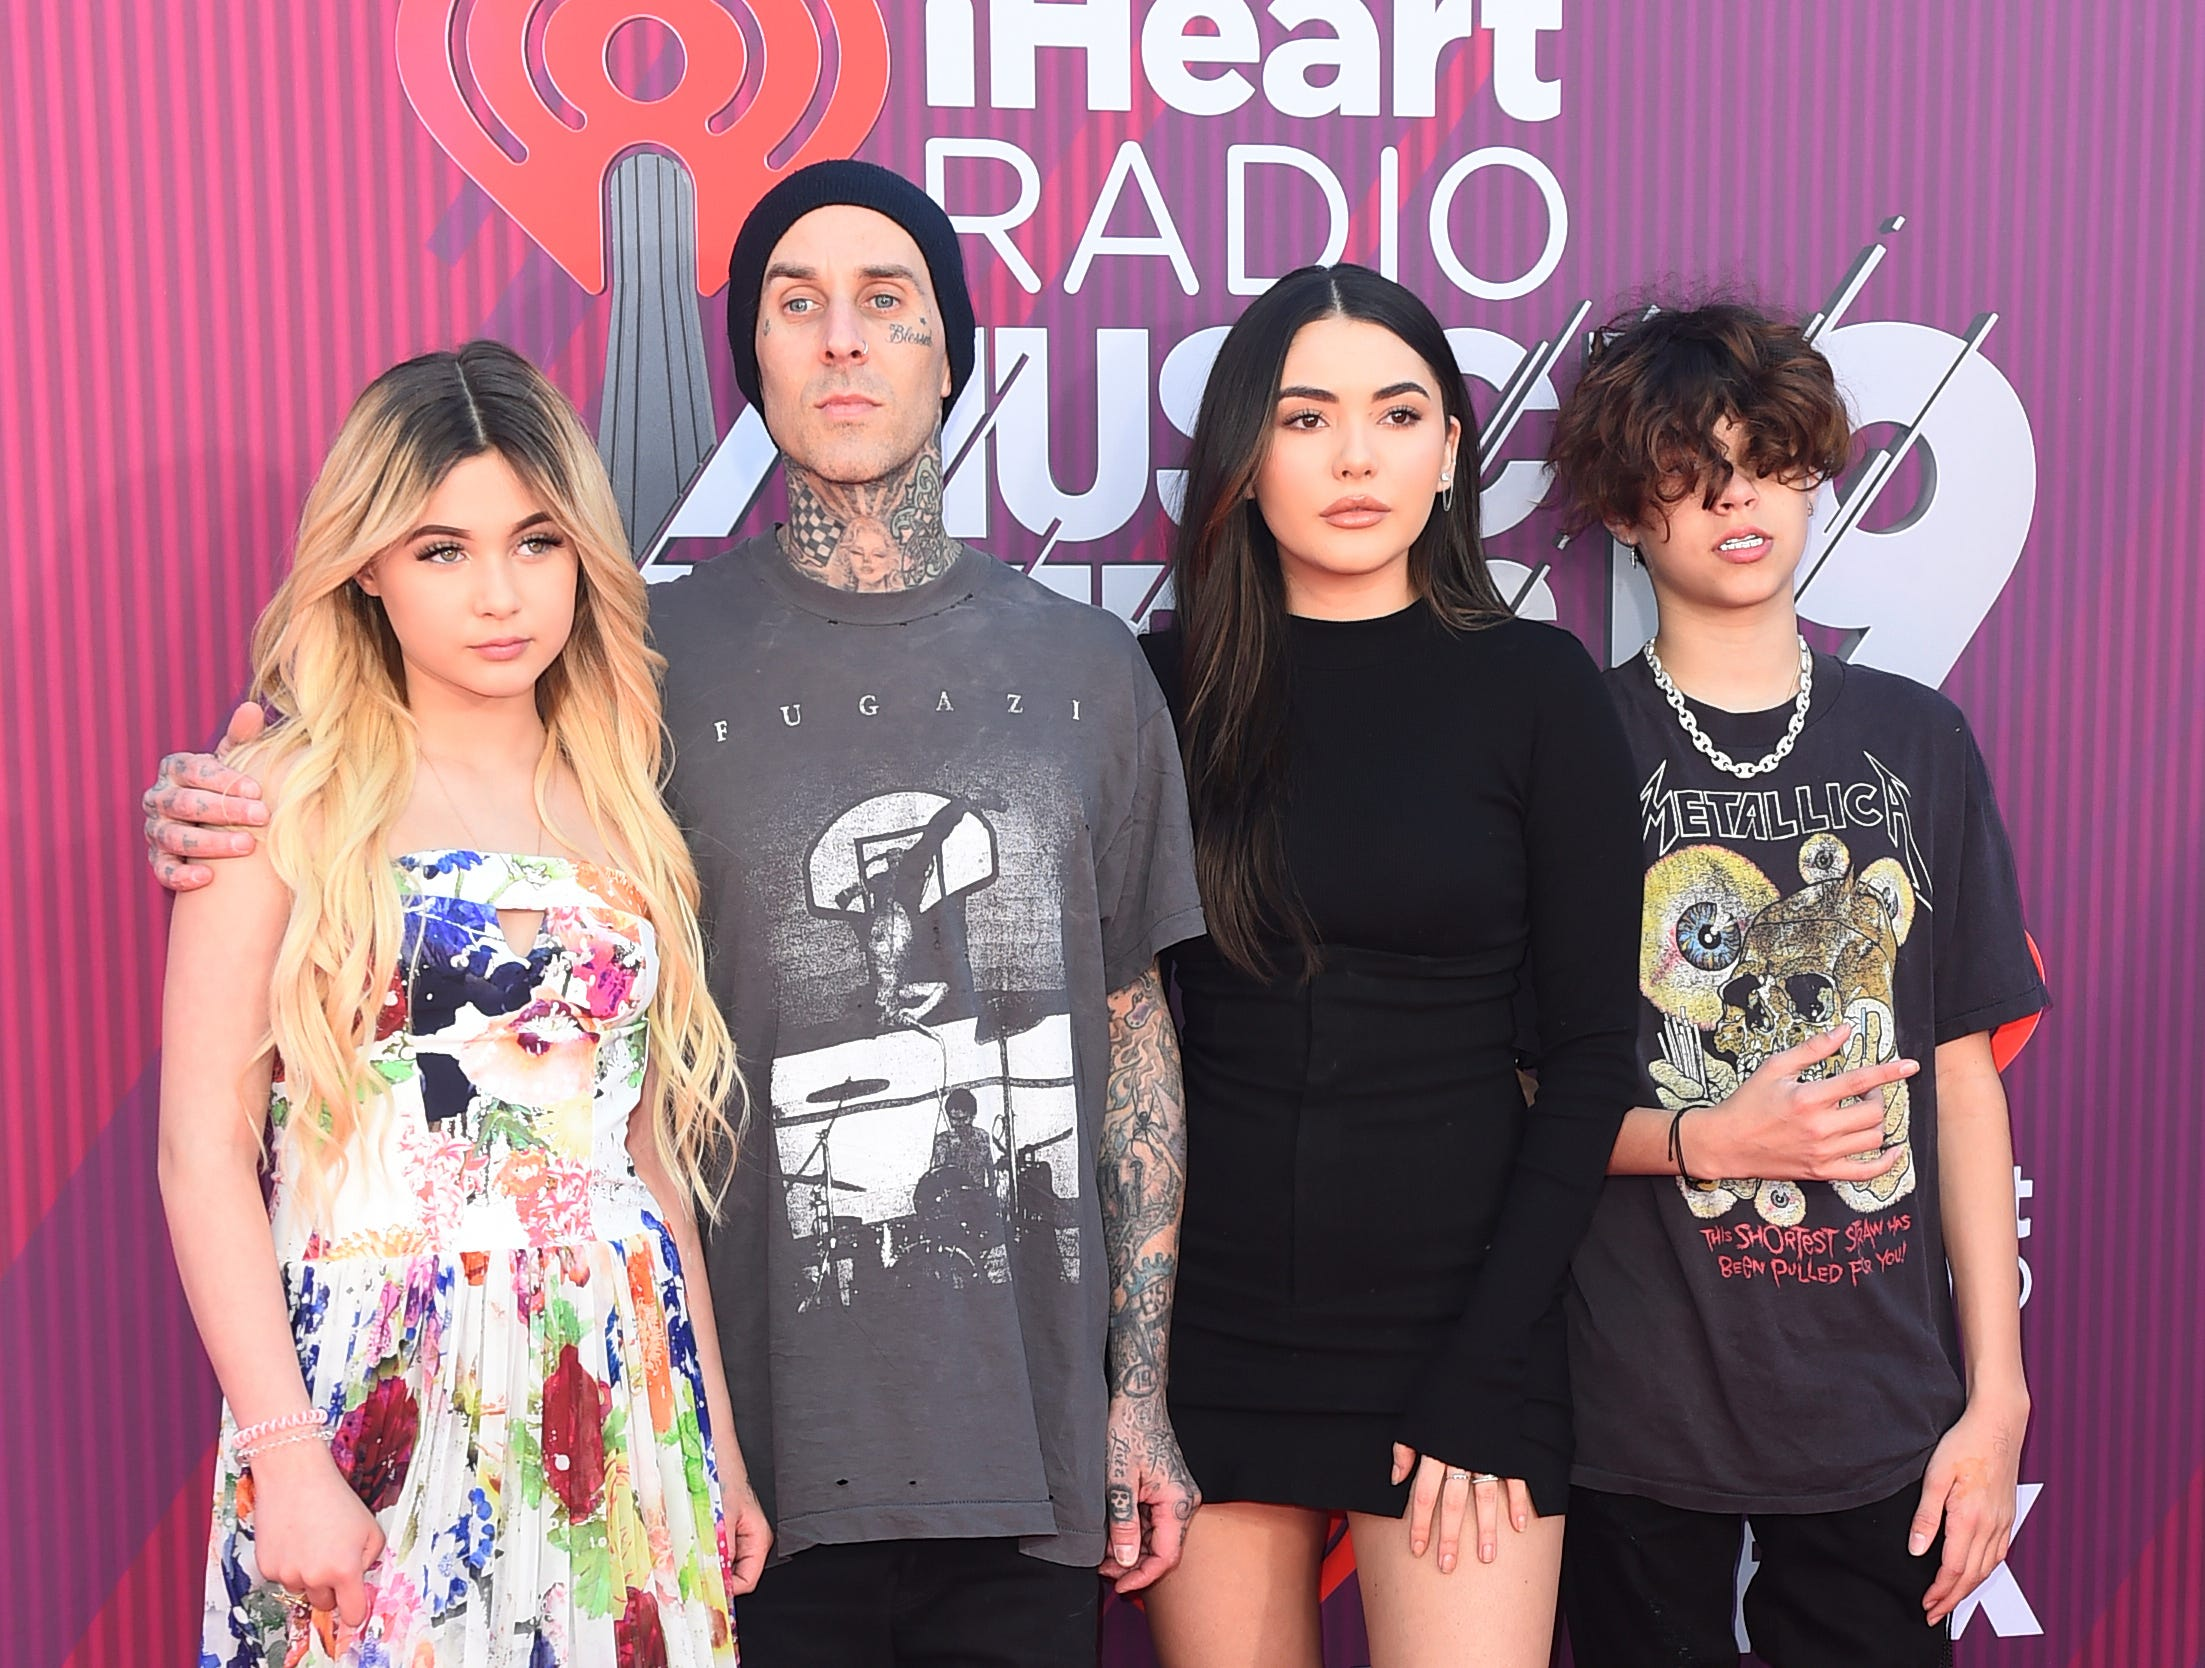 Alabama Luella Barker, from left, Travis Barker, Atiana de la Hoya and Landon Asher Barker arrive at the iHeartRadio Music Awards.